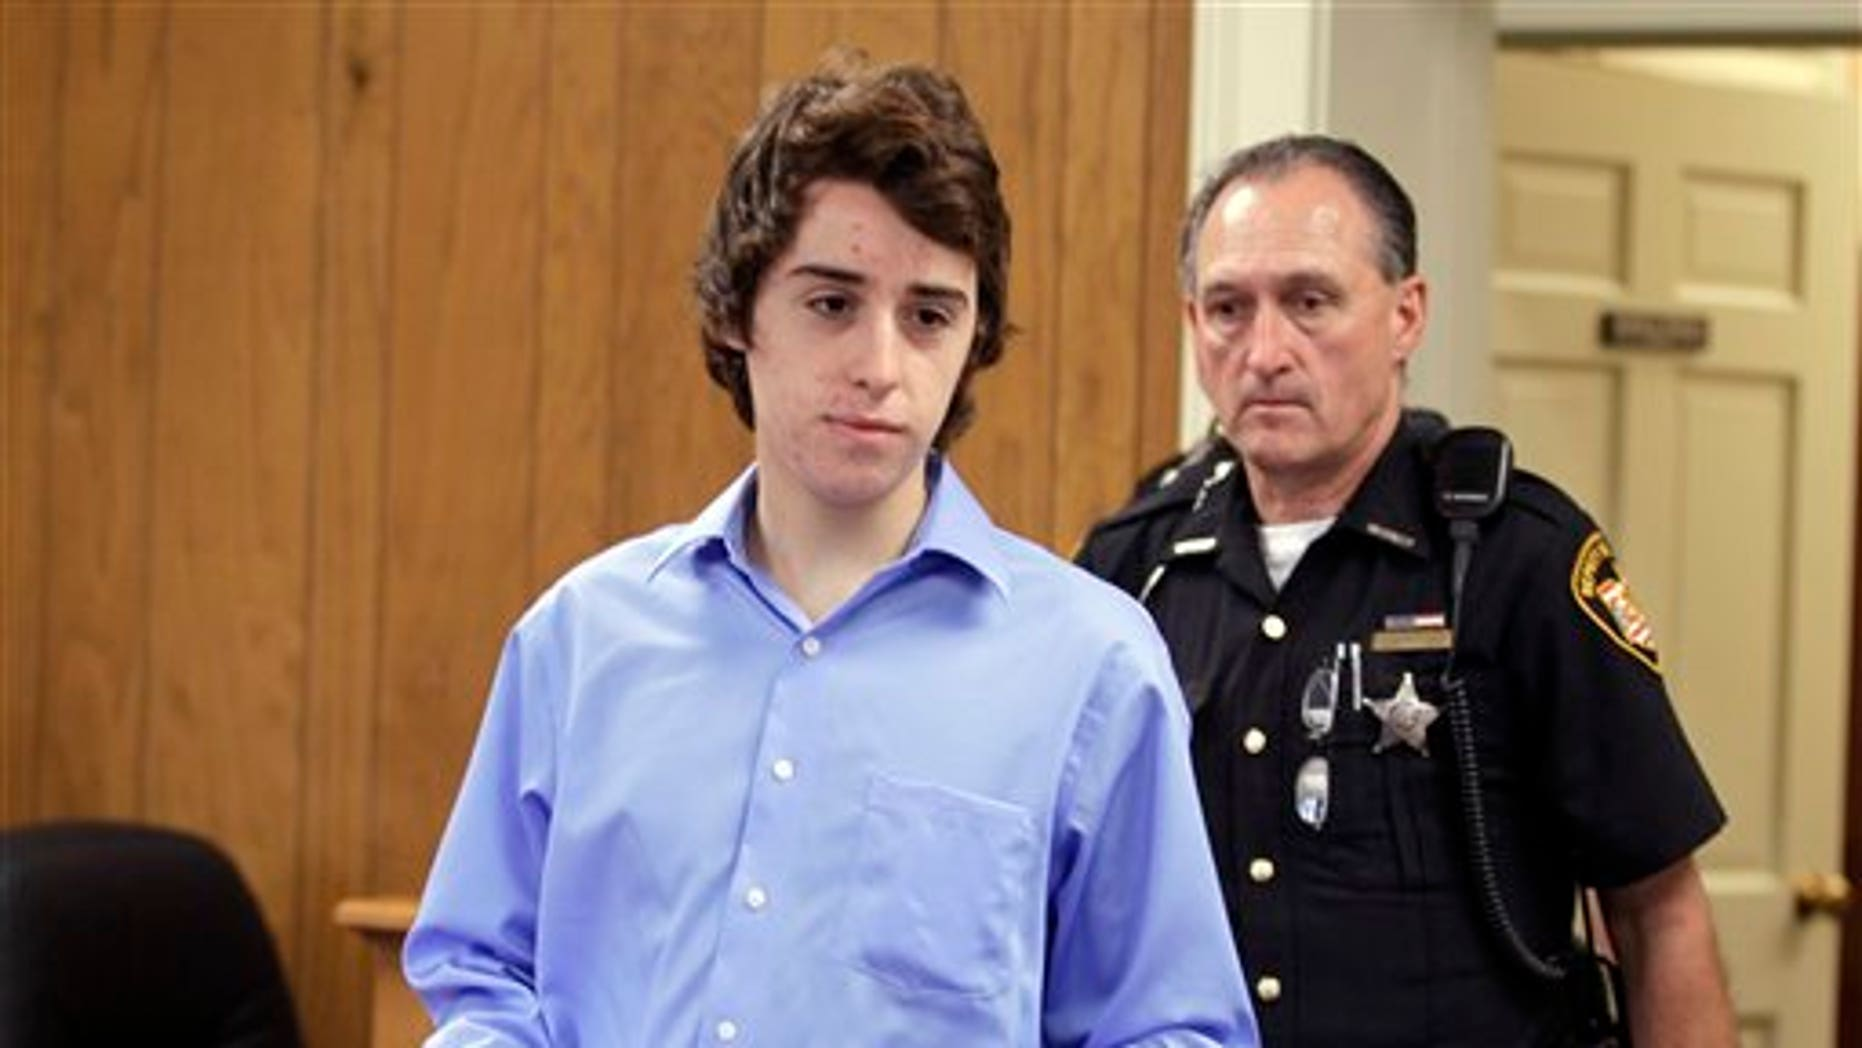 June 8, 2012: T.J. Lane is brought in to court for his arraignment by sheriff's deputies in Chardon, Ohio.